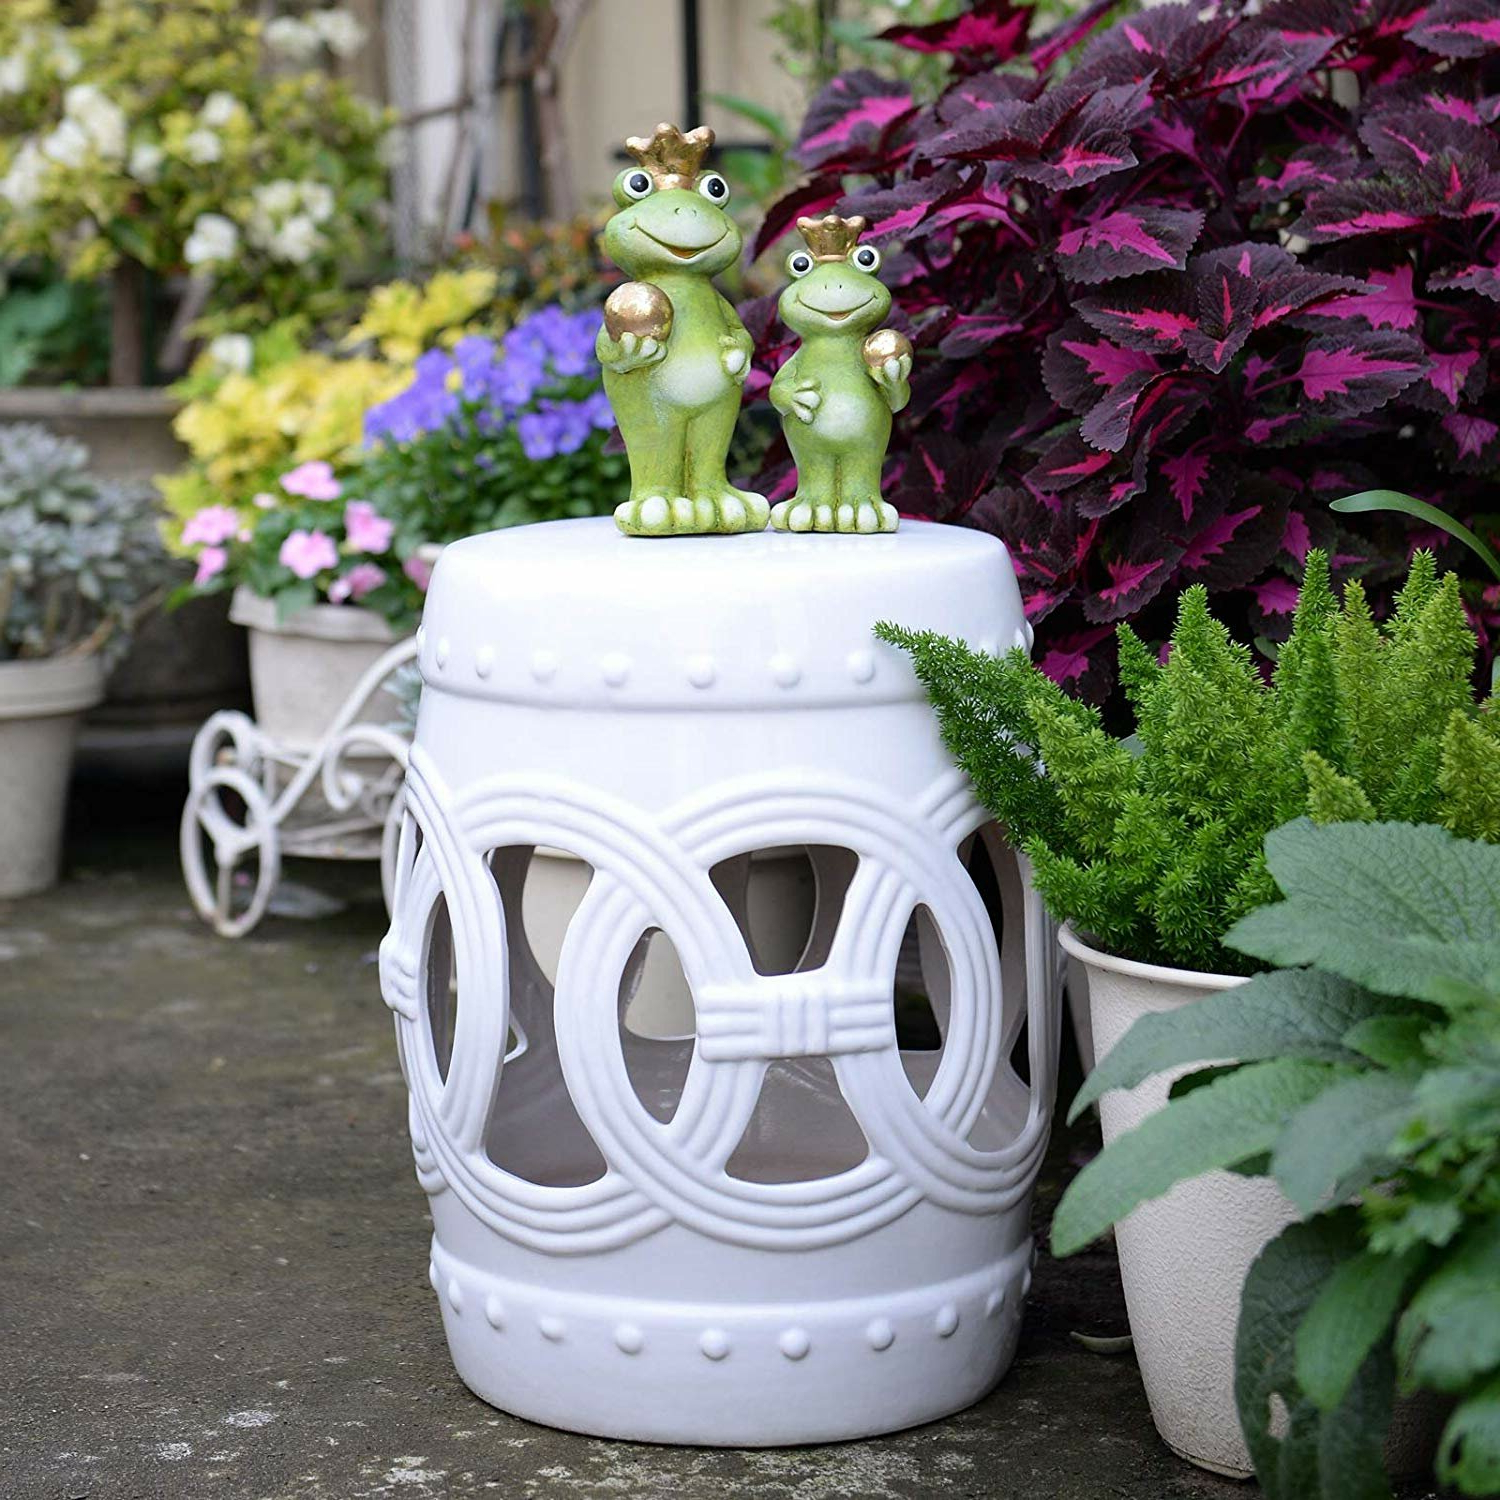 Harwich Ceramic Knotted Rings Garden Stool Throughout Fashionable Harwich Ceramic Garden Stools (View 2 of 30)